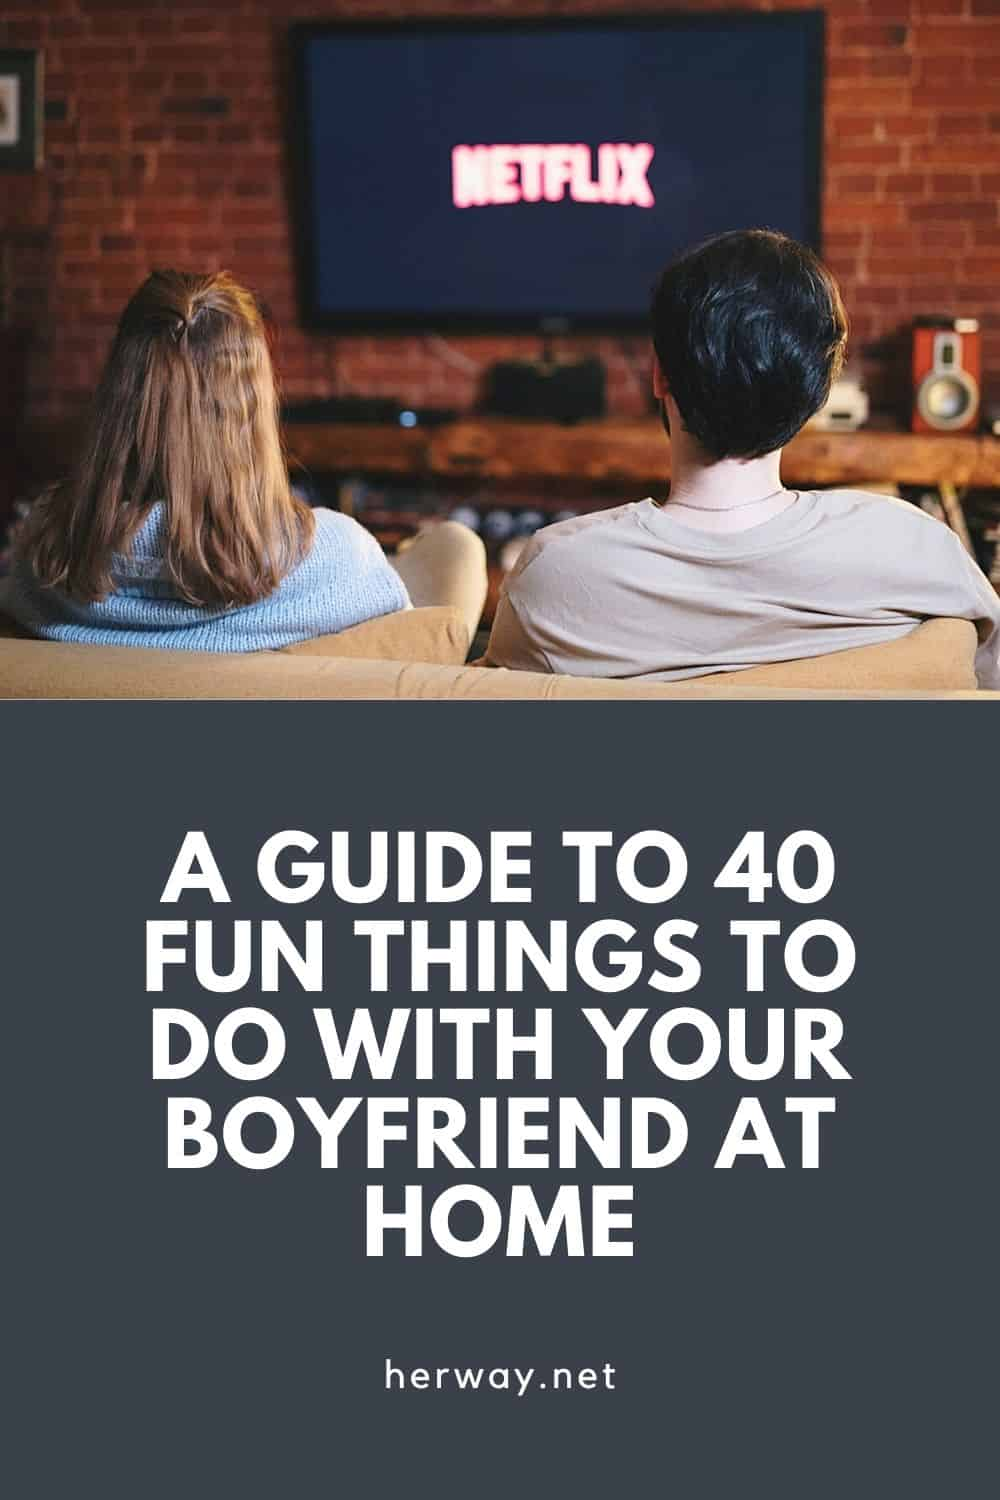 A Guide To 20 Fun Things To Do With Your Boyfriend At Home